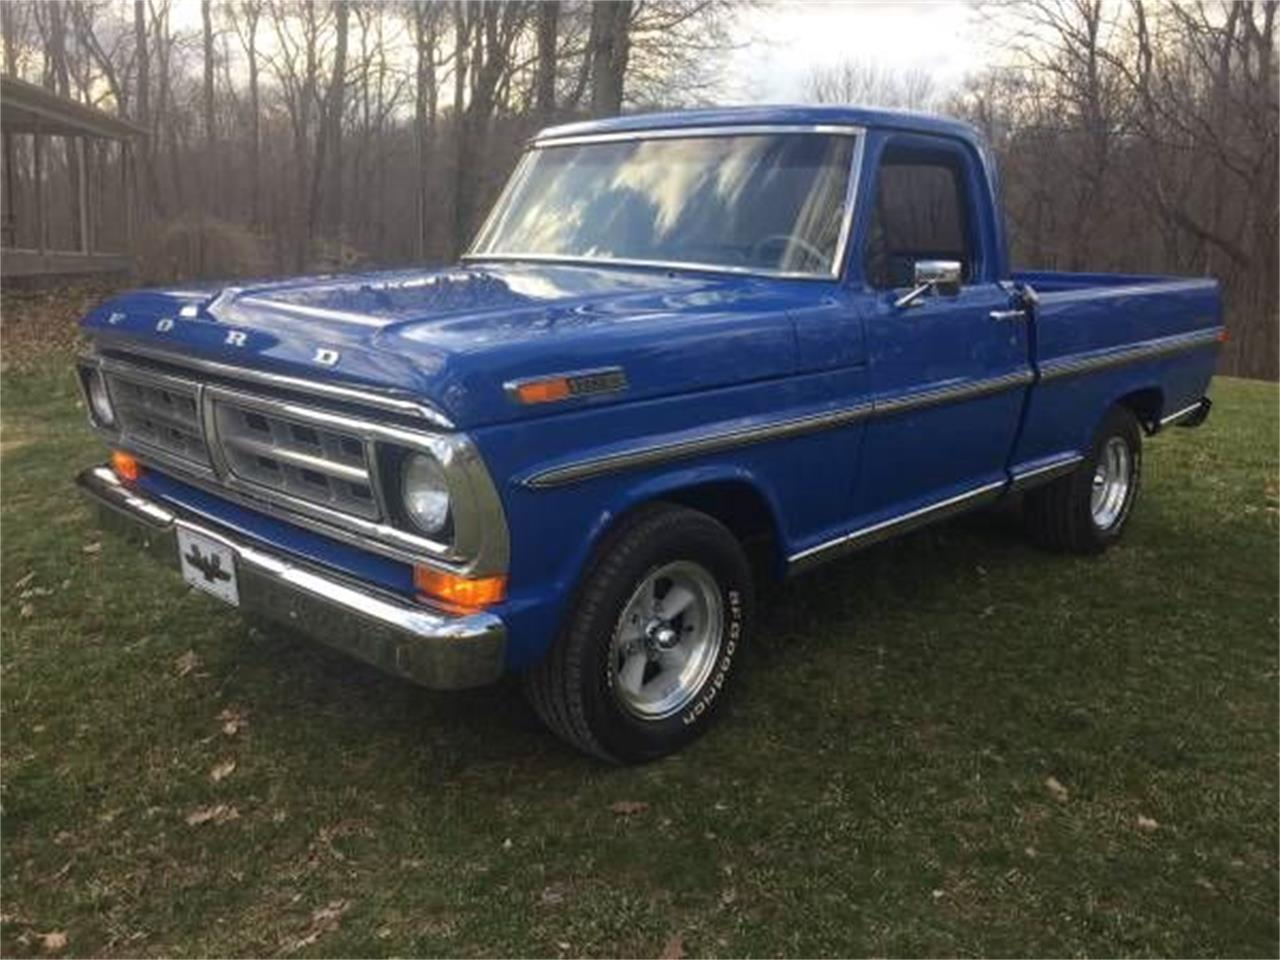 Large picture of 72 f100 nzbg